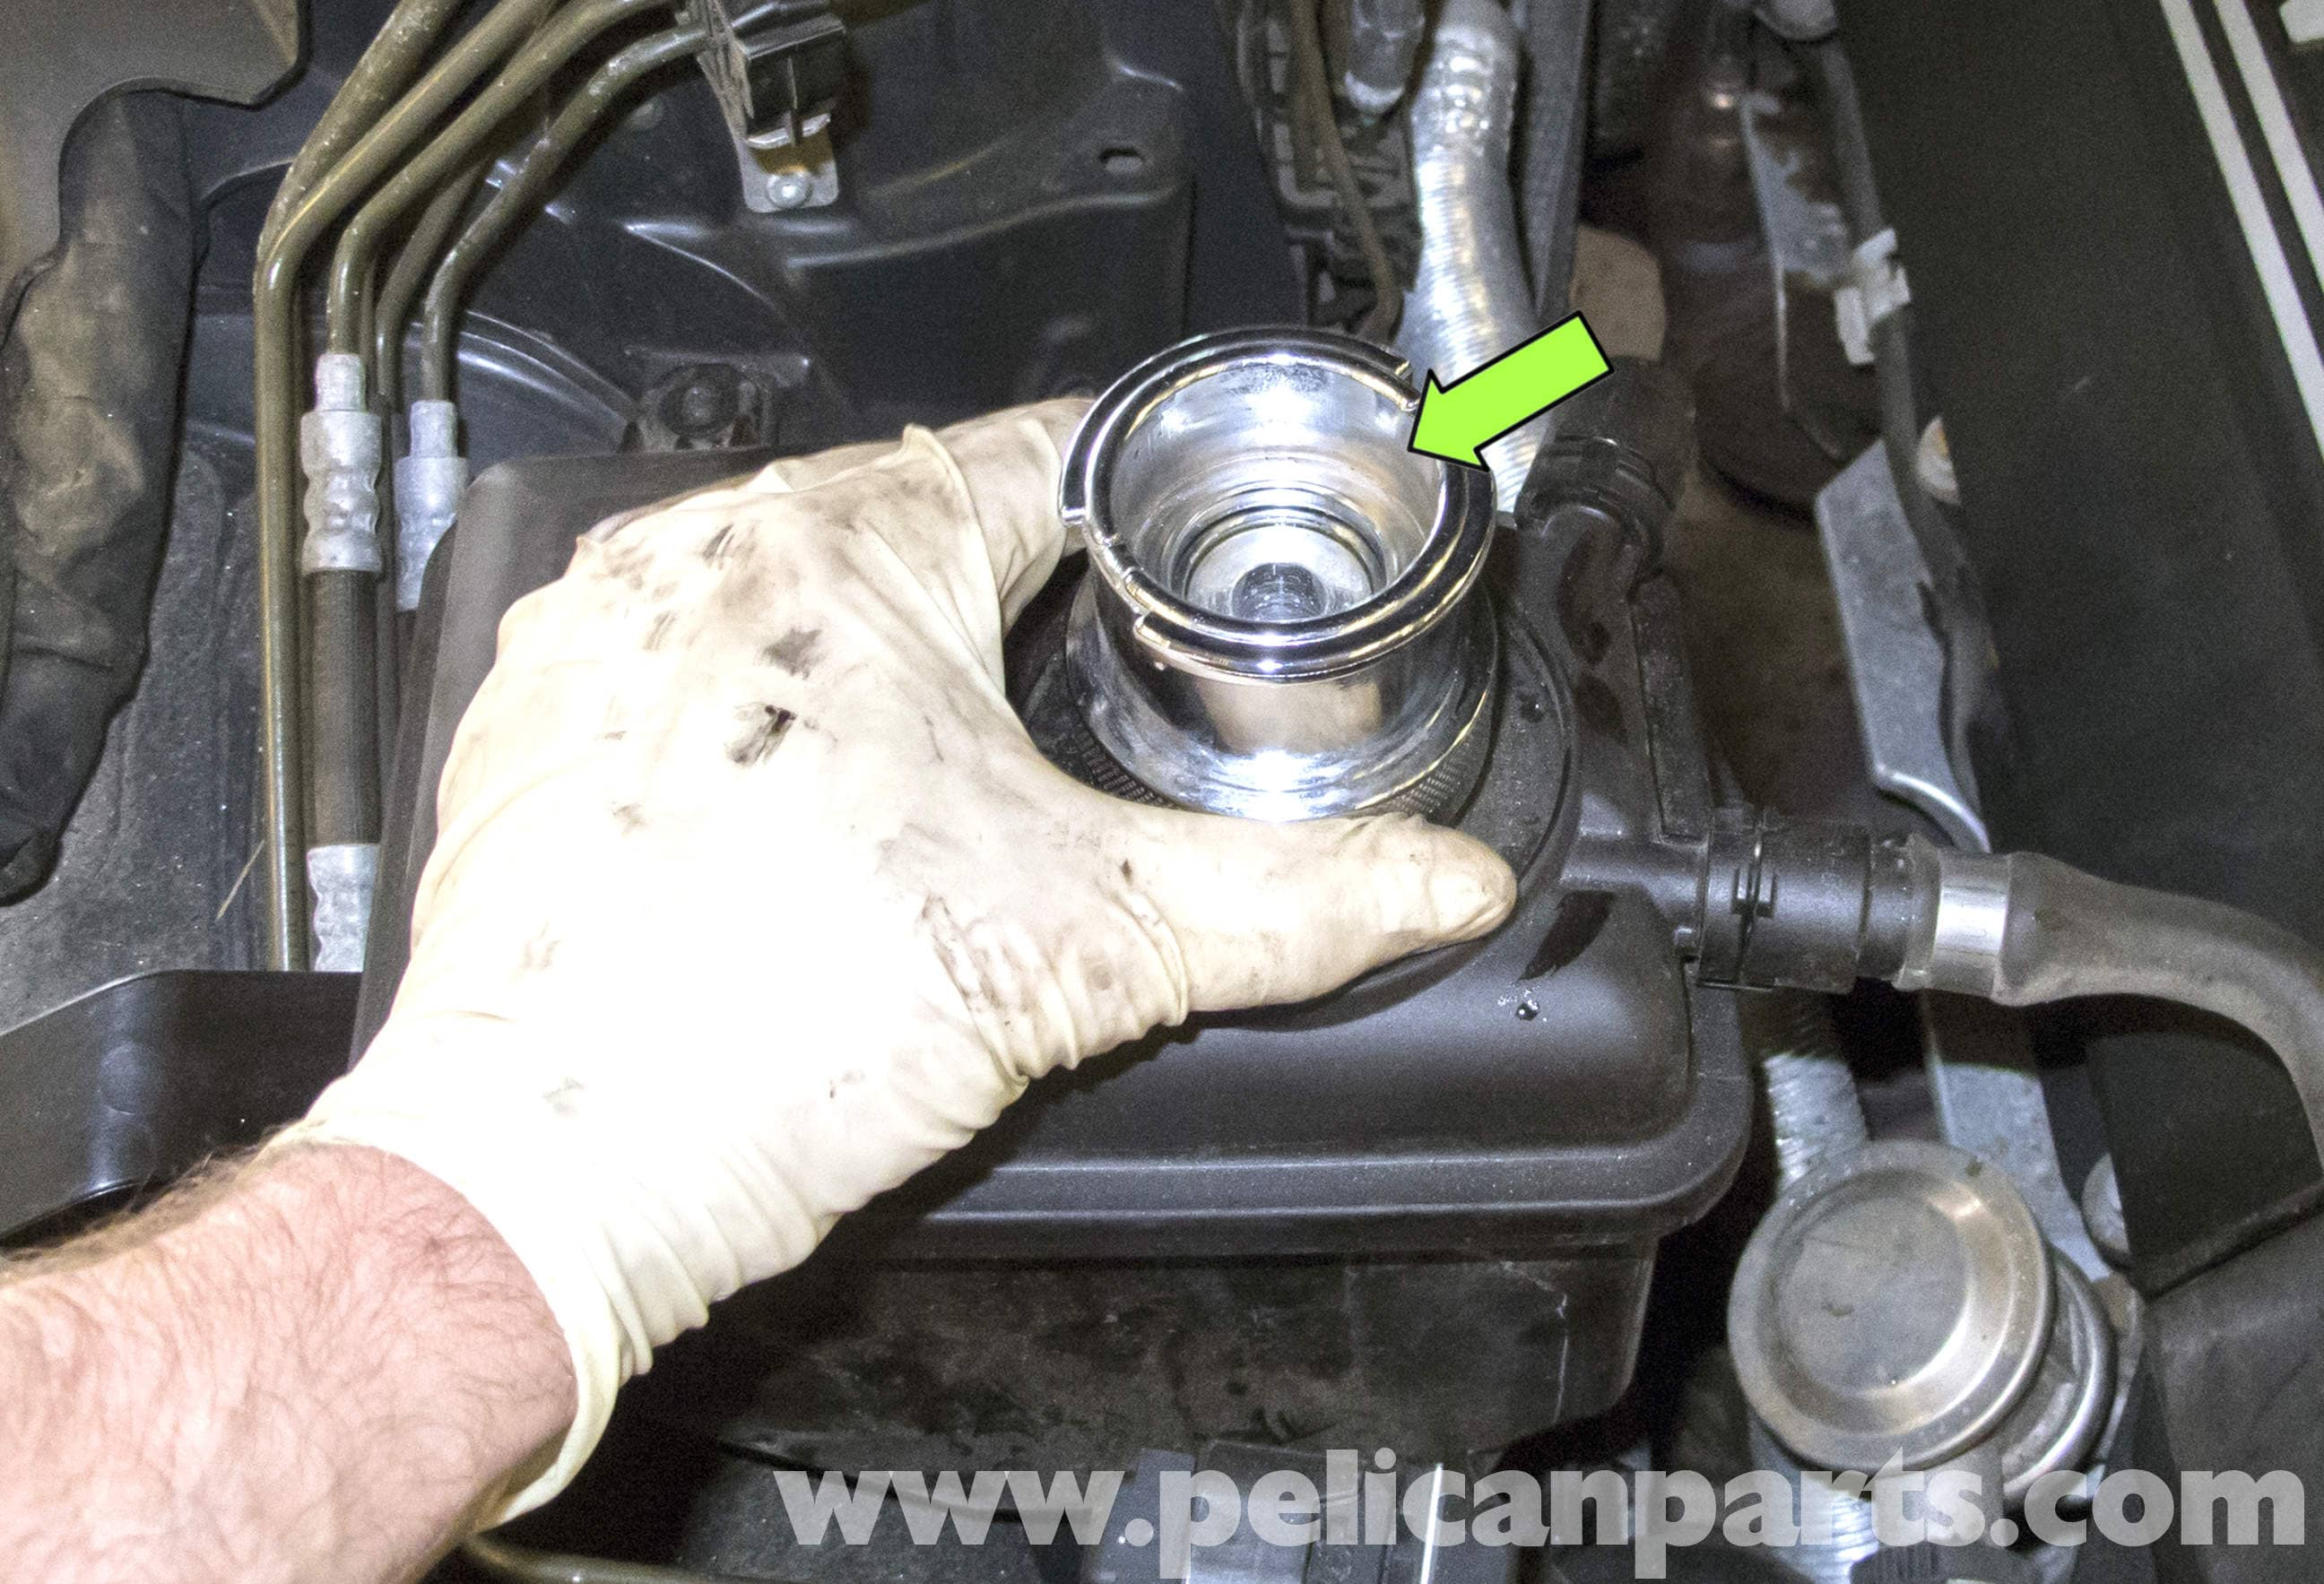 BMW E60 5-Series Cooling System Leak Test (2003-2010